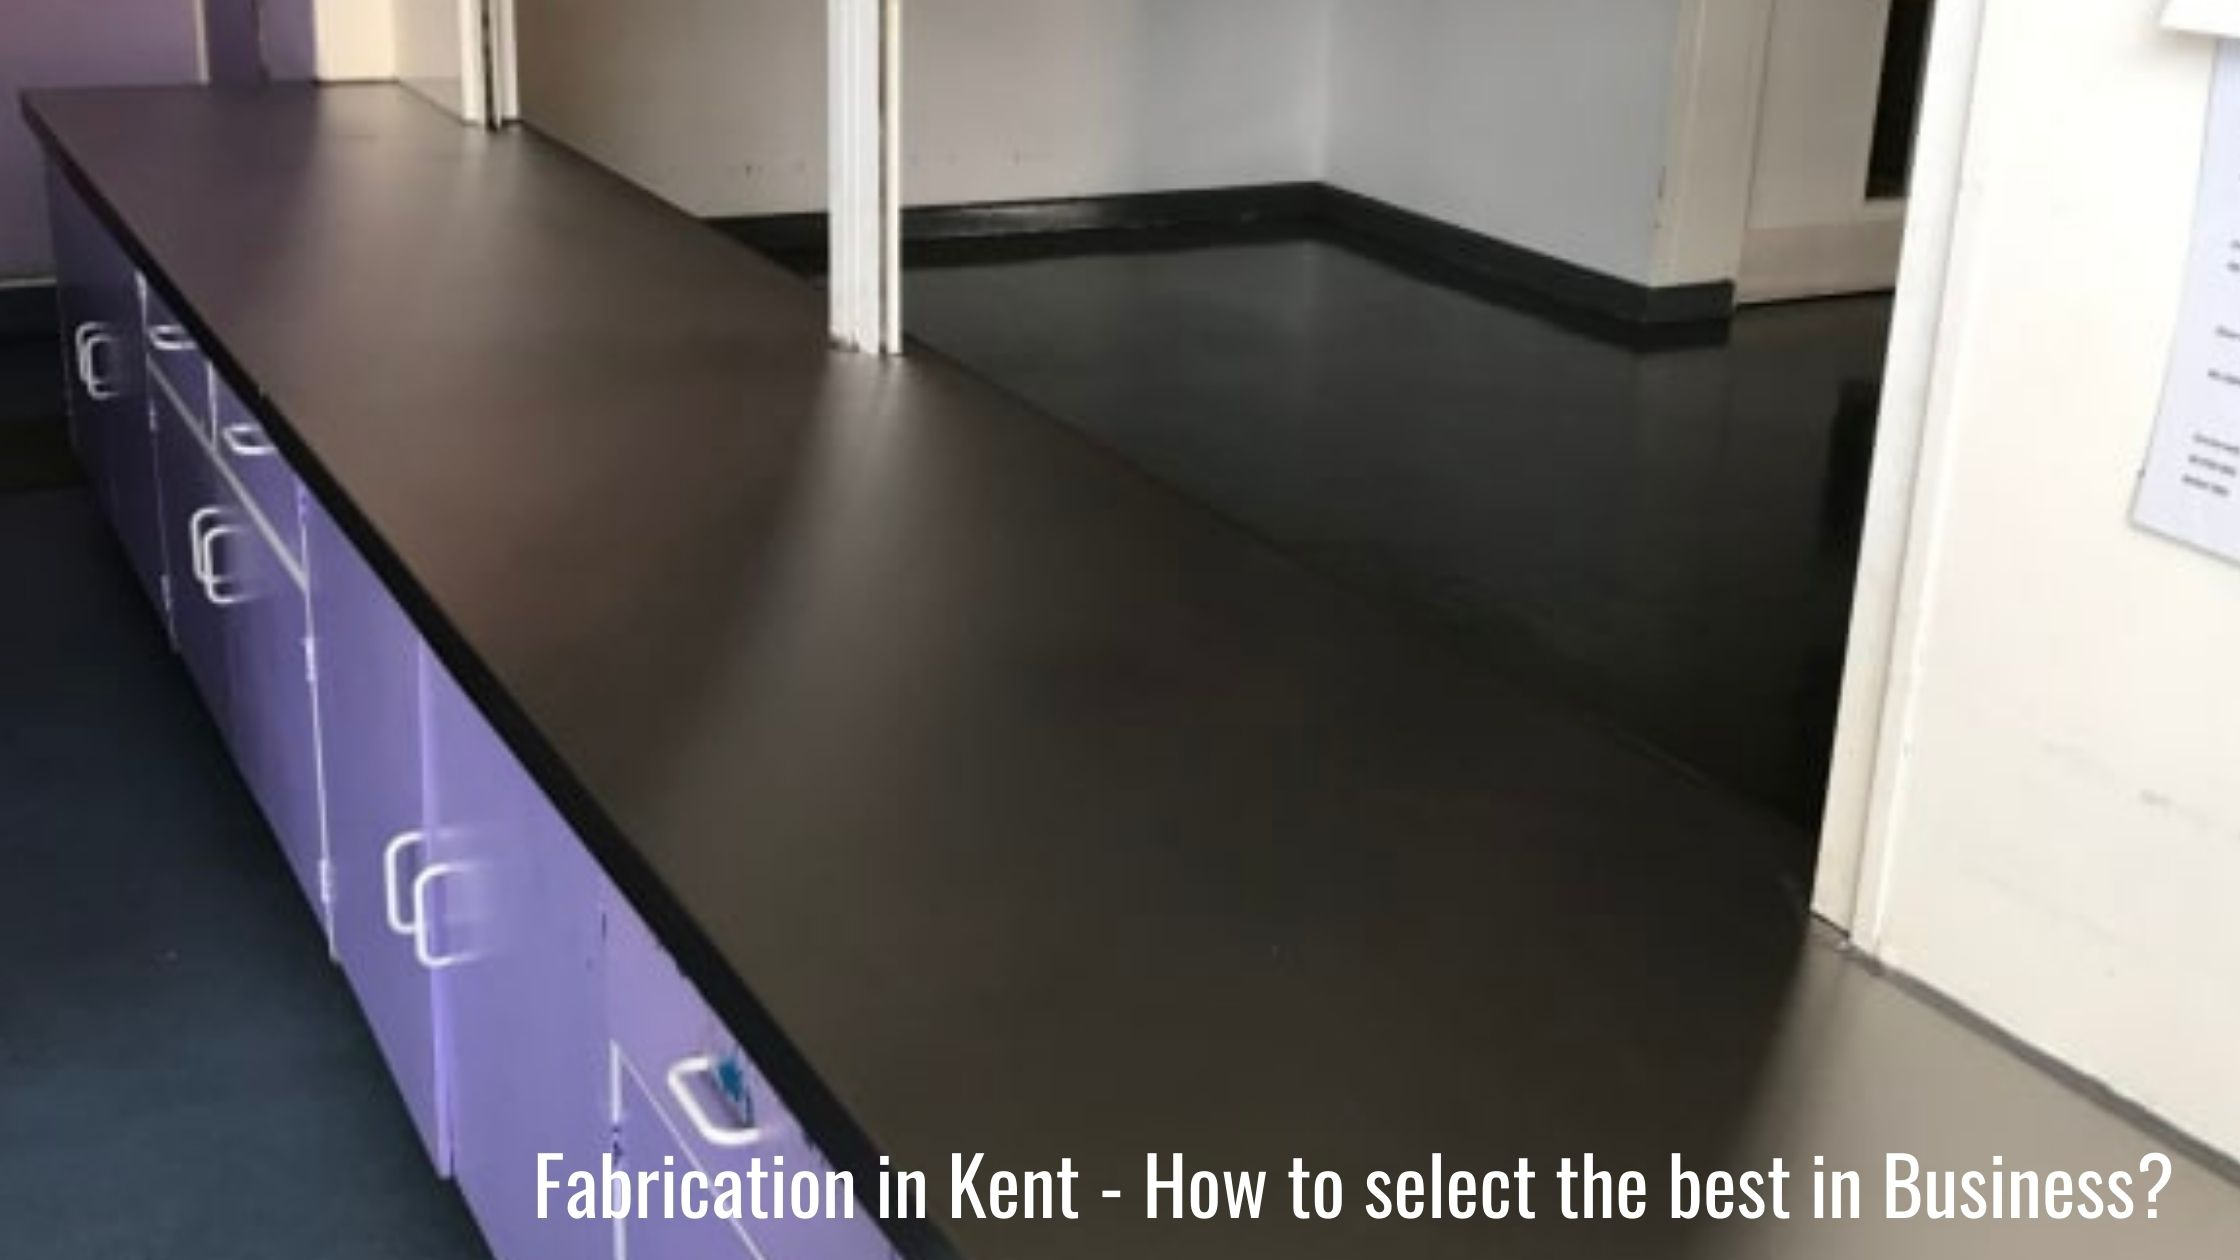 Fabrication Kent